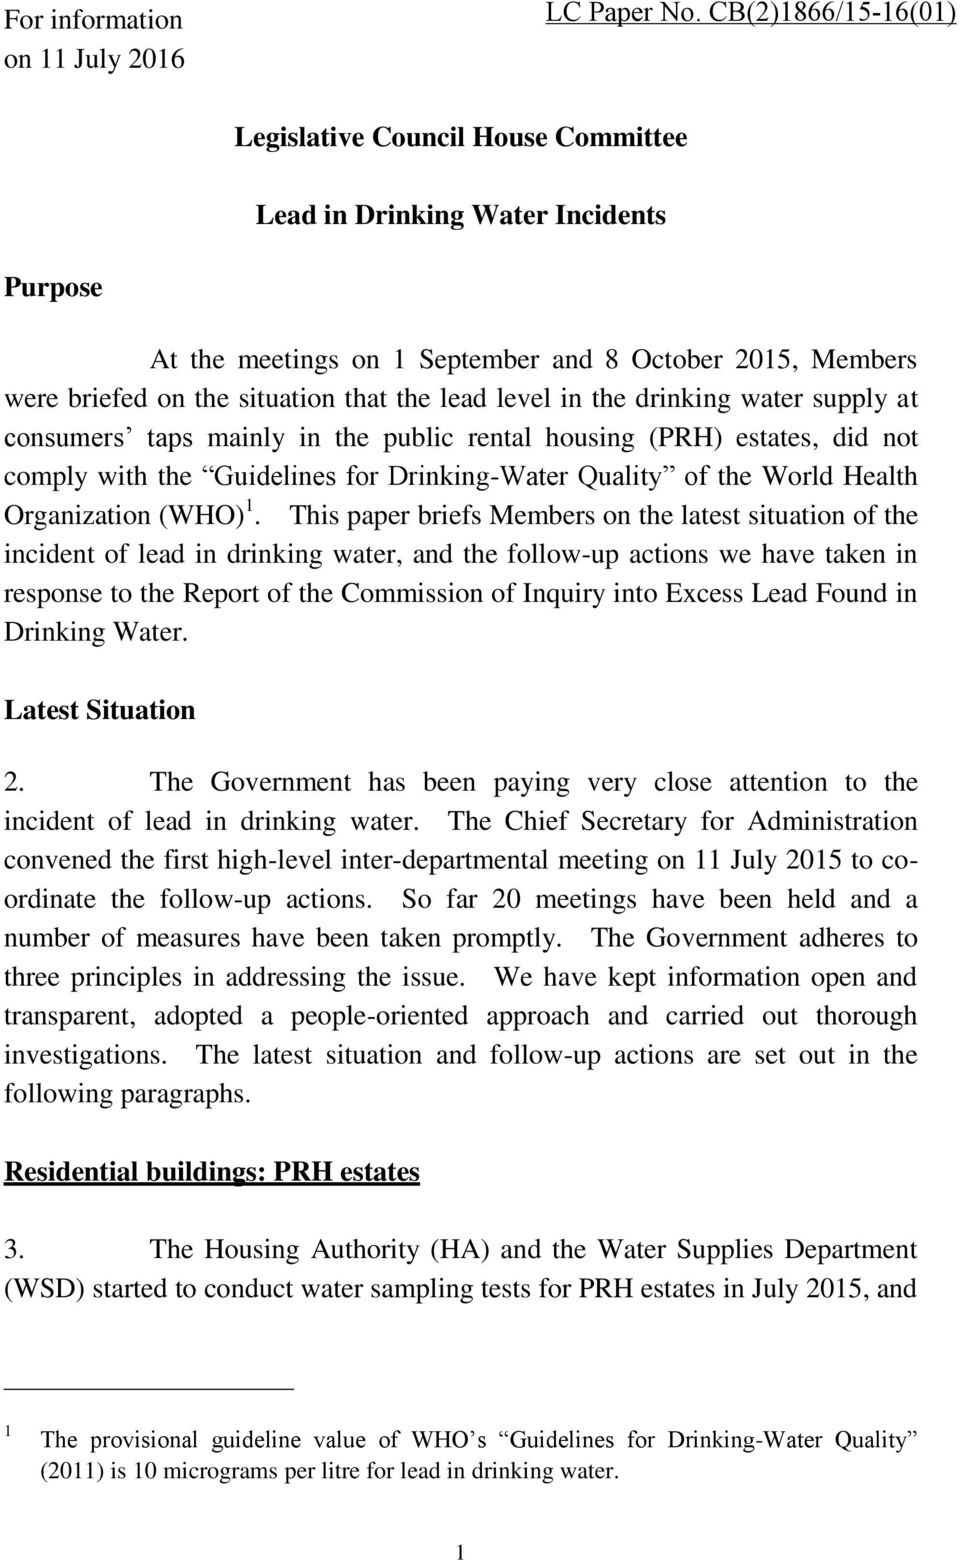 level in the drinking water supply at consumers taps mainly in the public rental housing (PRH) estates, did not comply with the Guidelines for Drinking-Water Quality of the World Health Organization